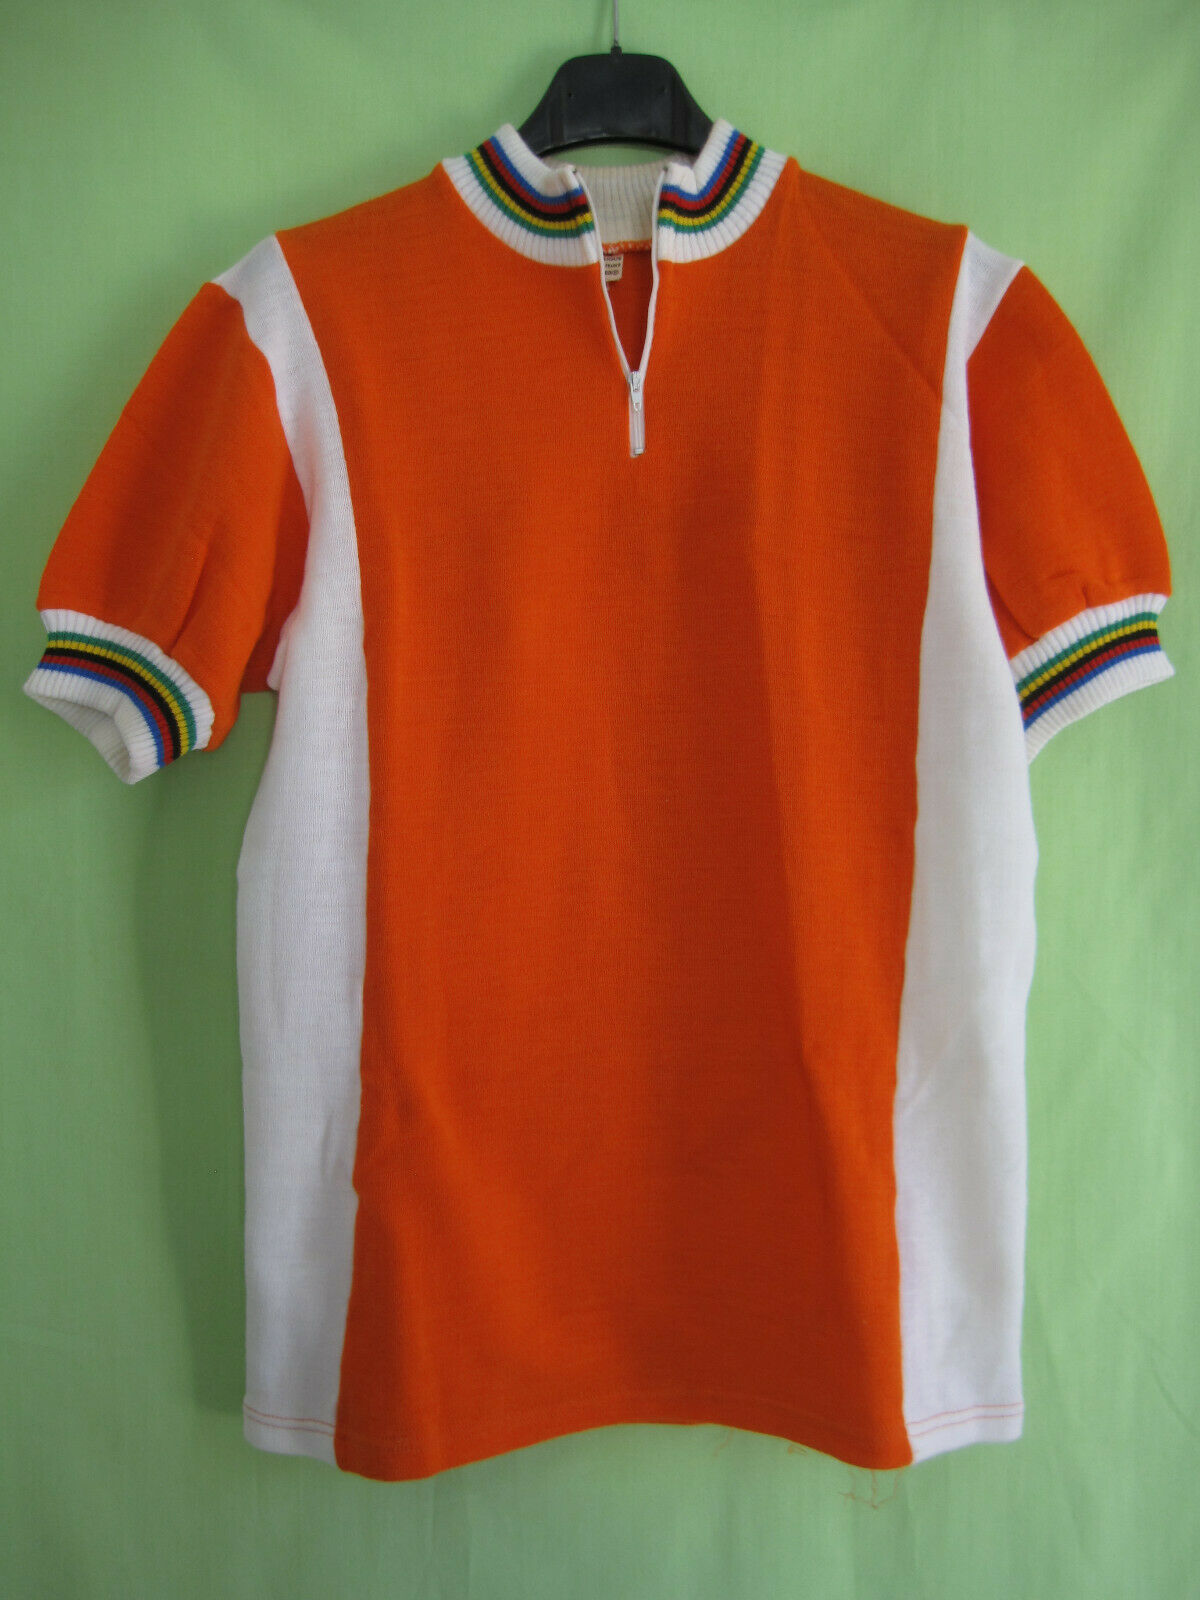 Maillot Cycliste vintage orange Cycles Acrylique 70'S jersey cycling - 4   L